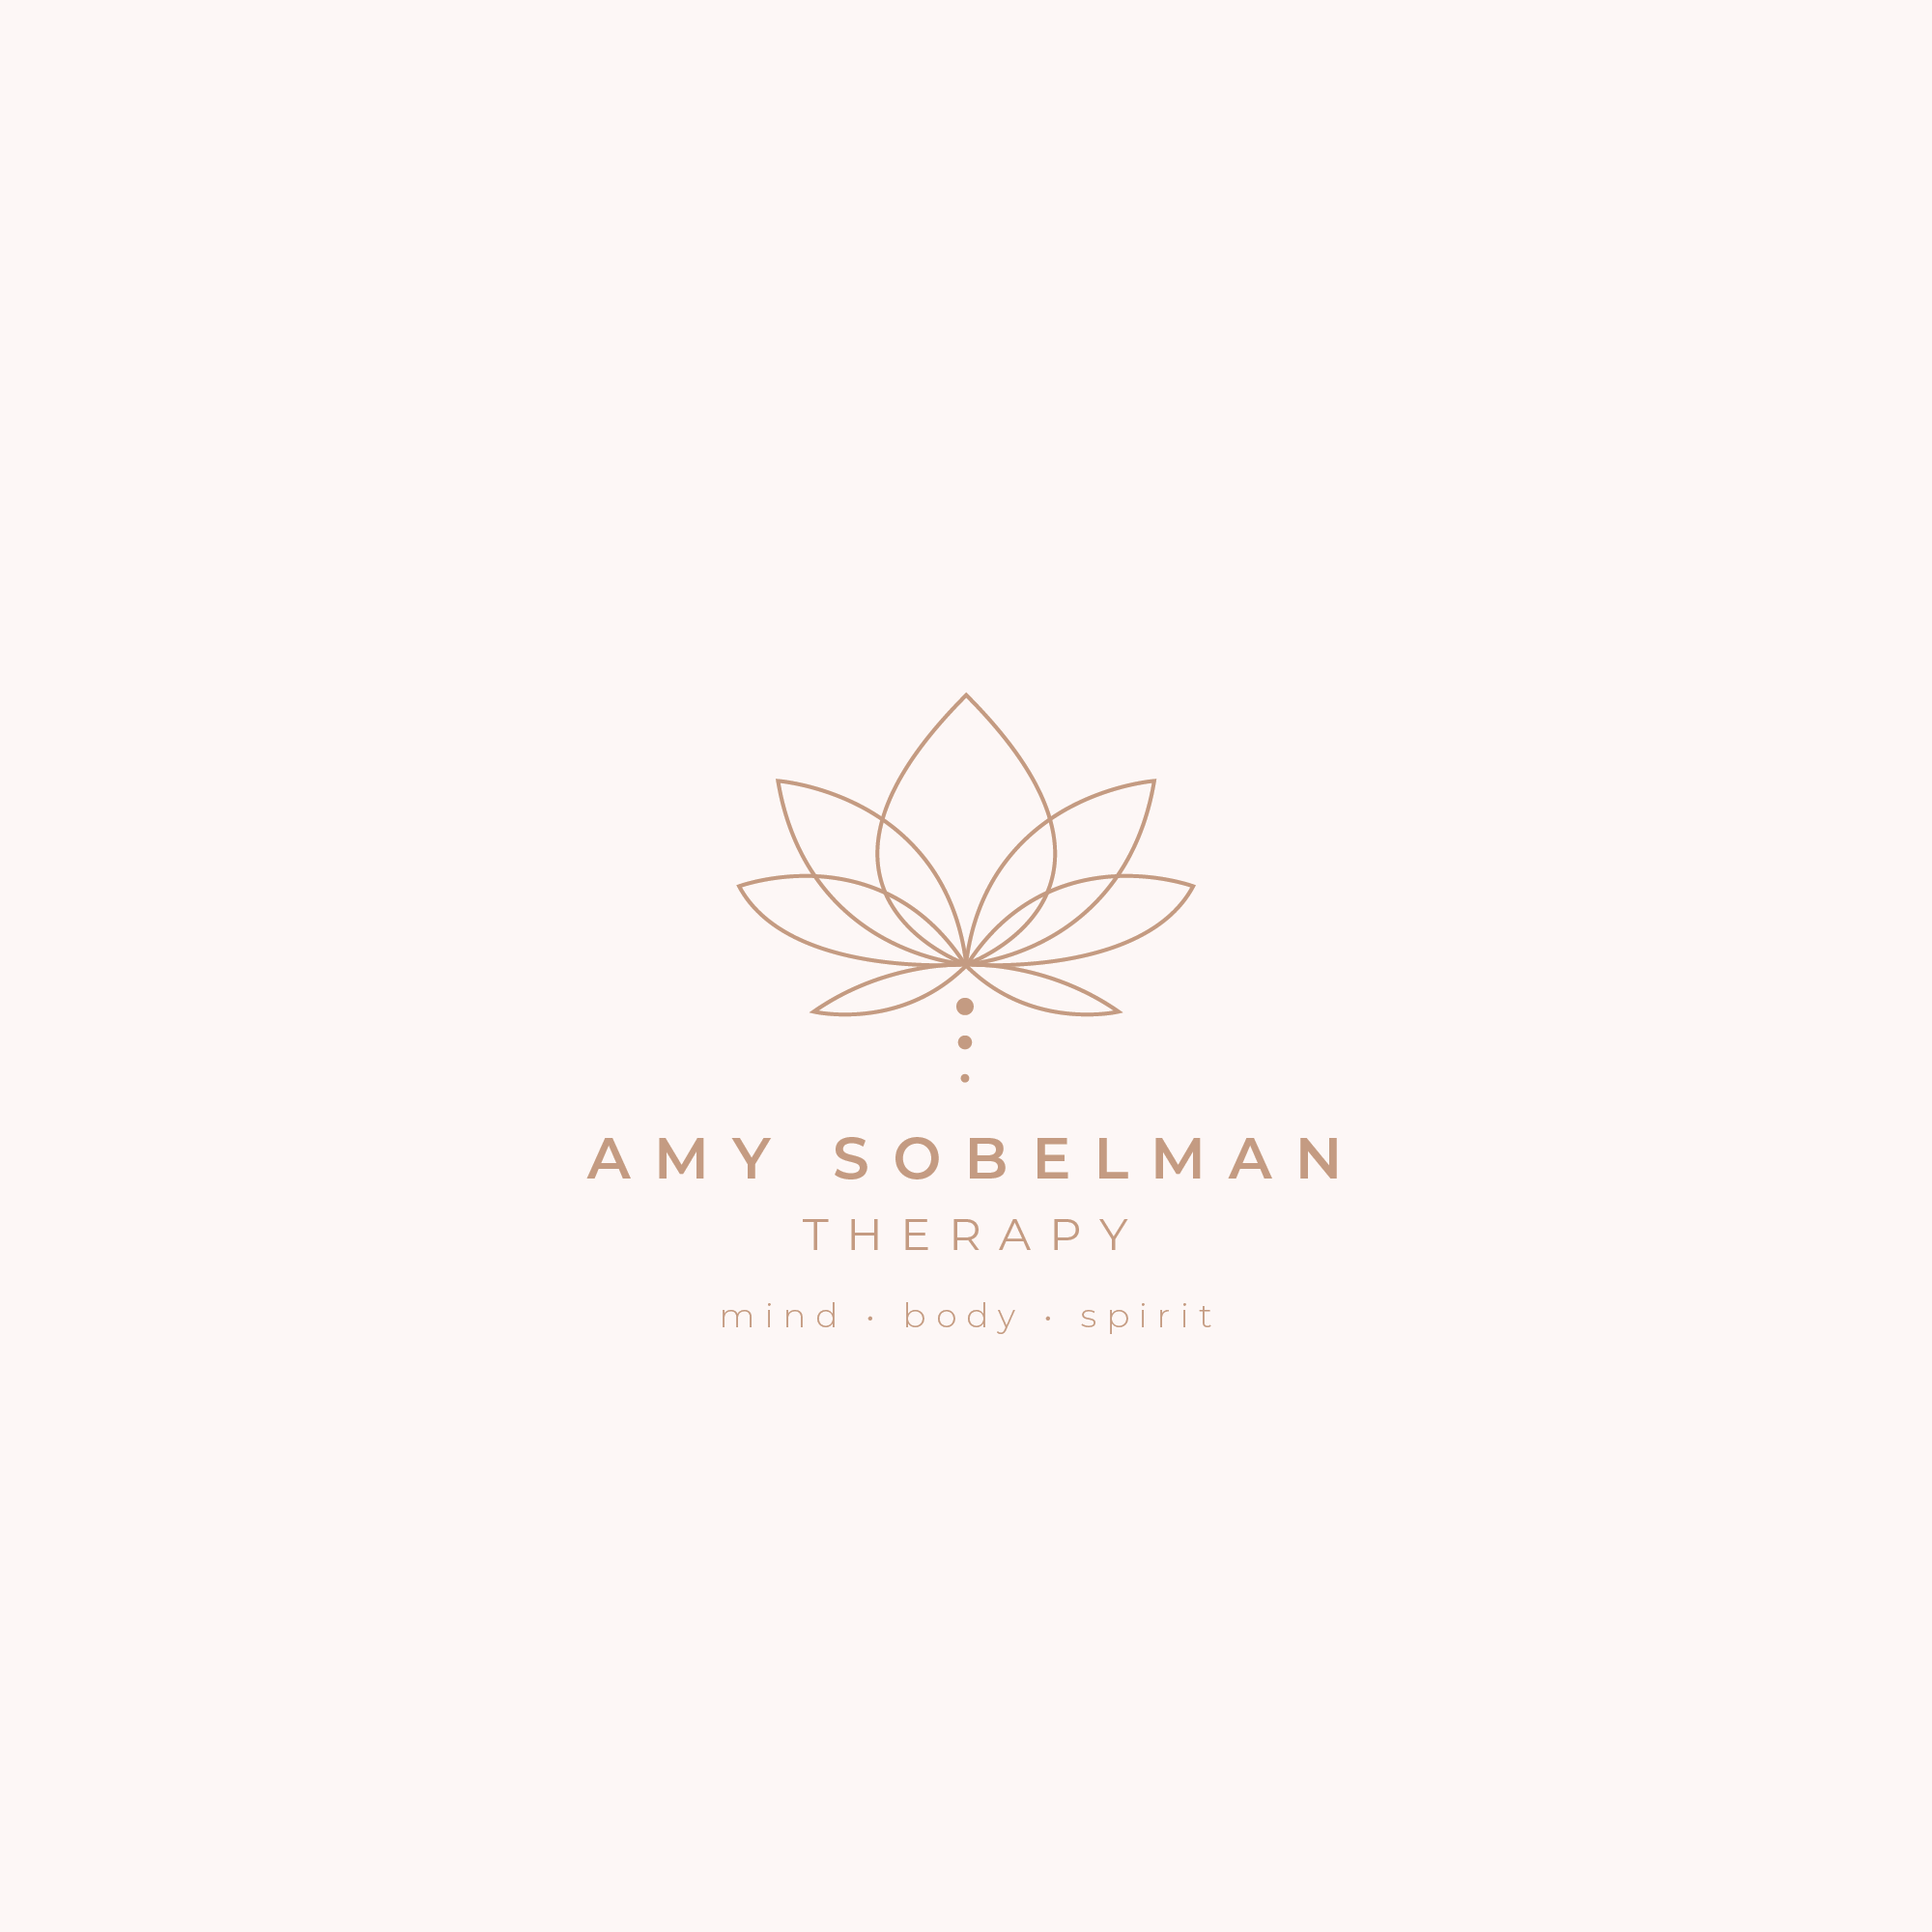 Design a beautiful and inspiring logo for a professional holistic therapy practice for millennials